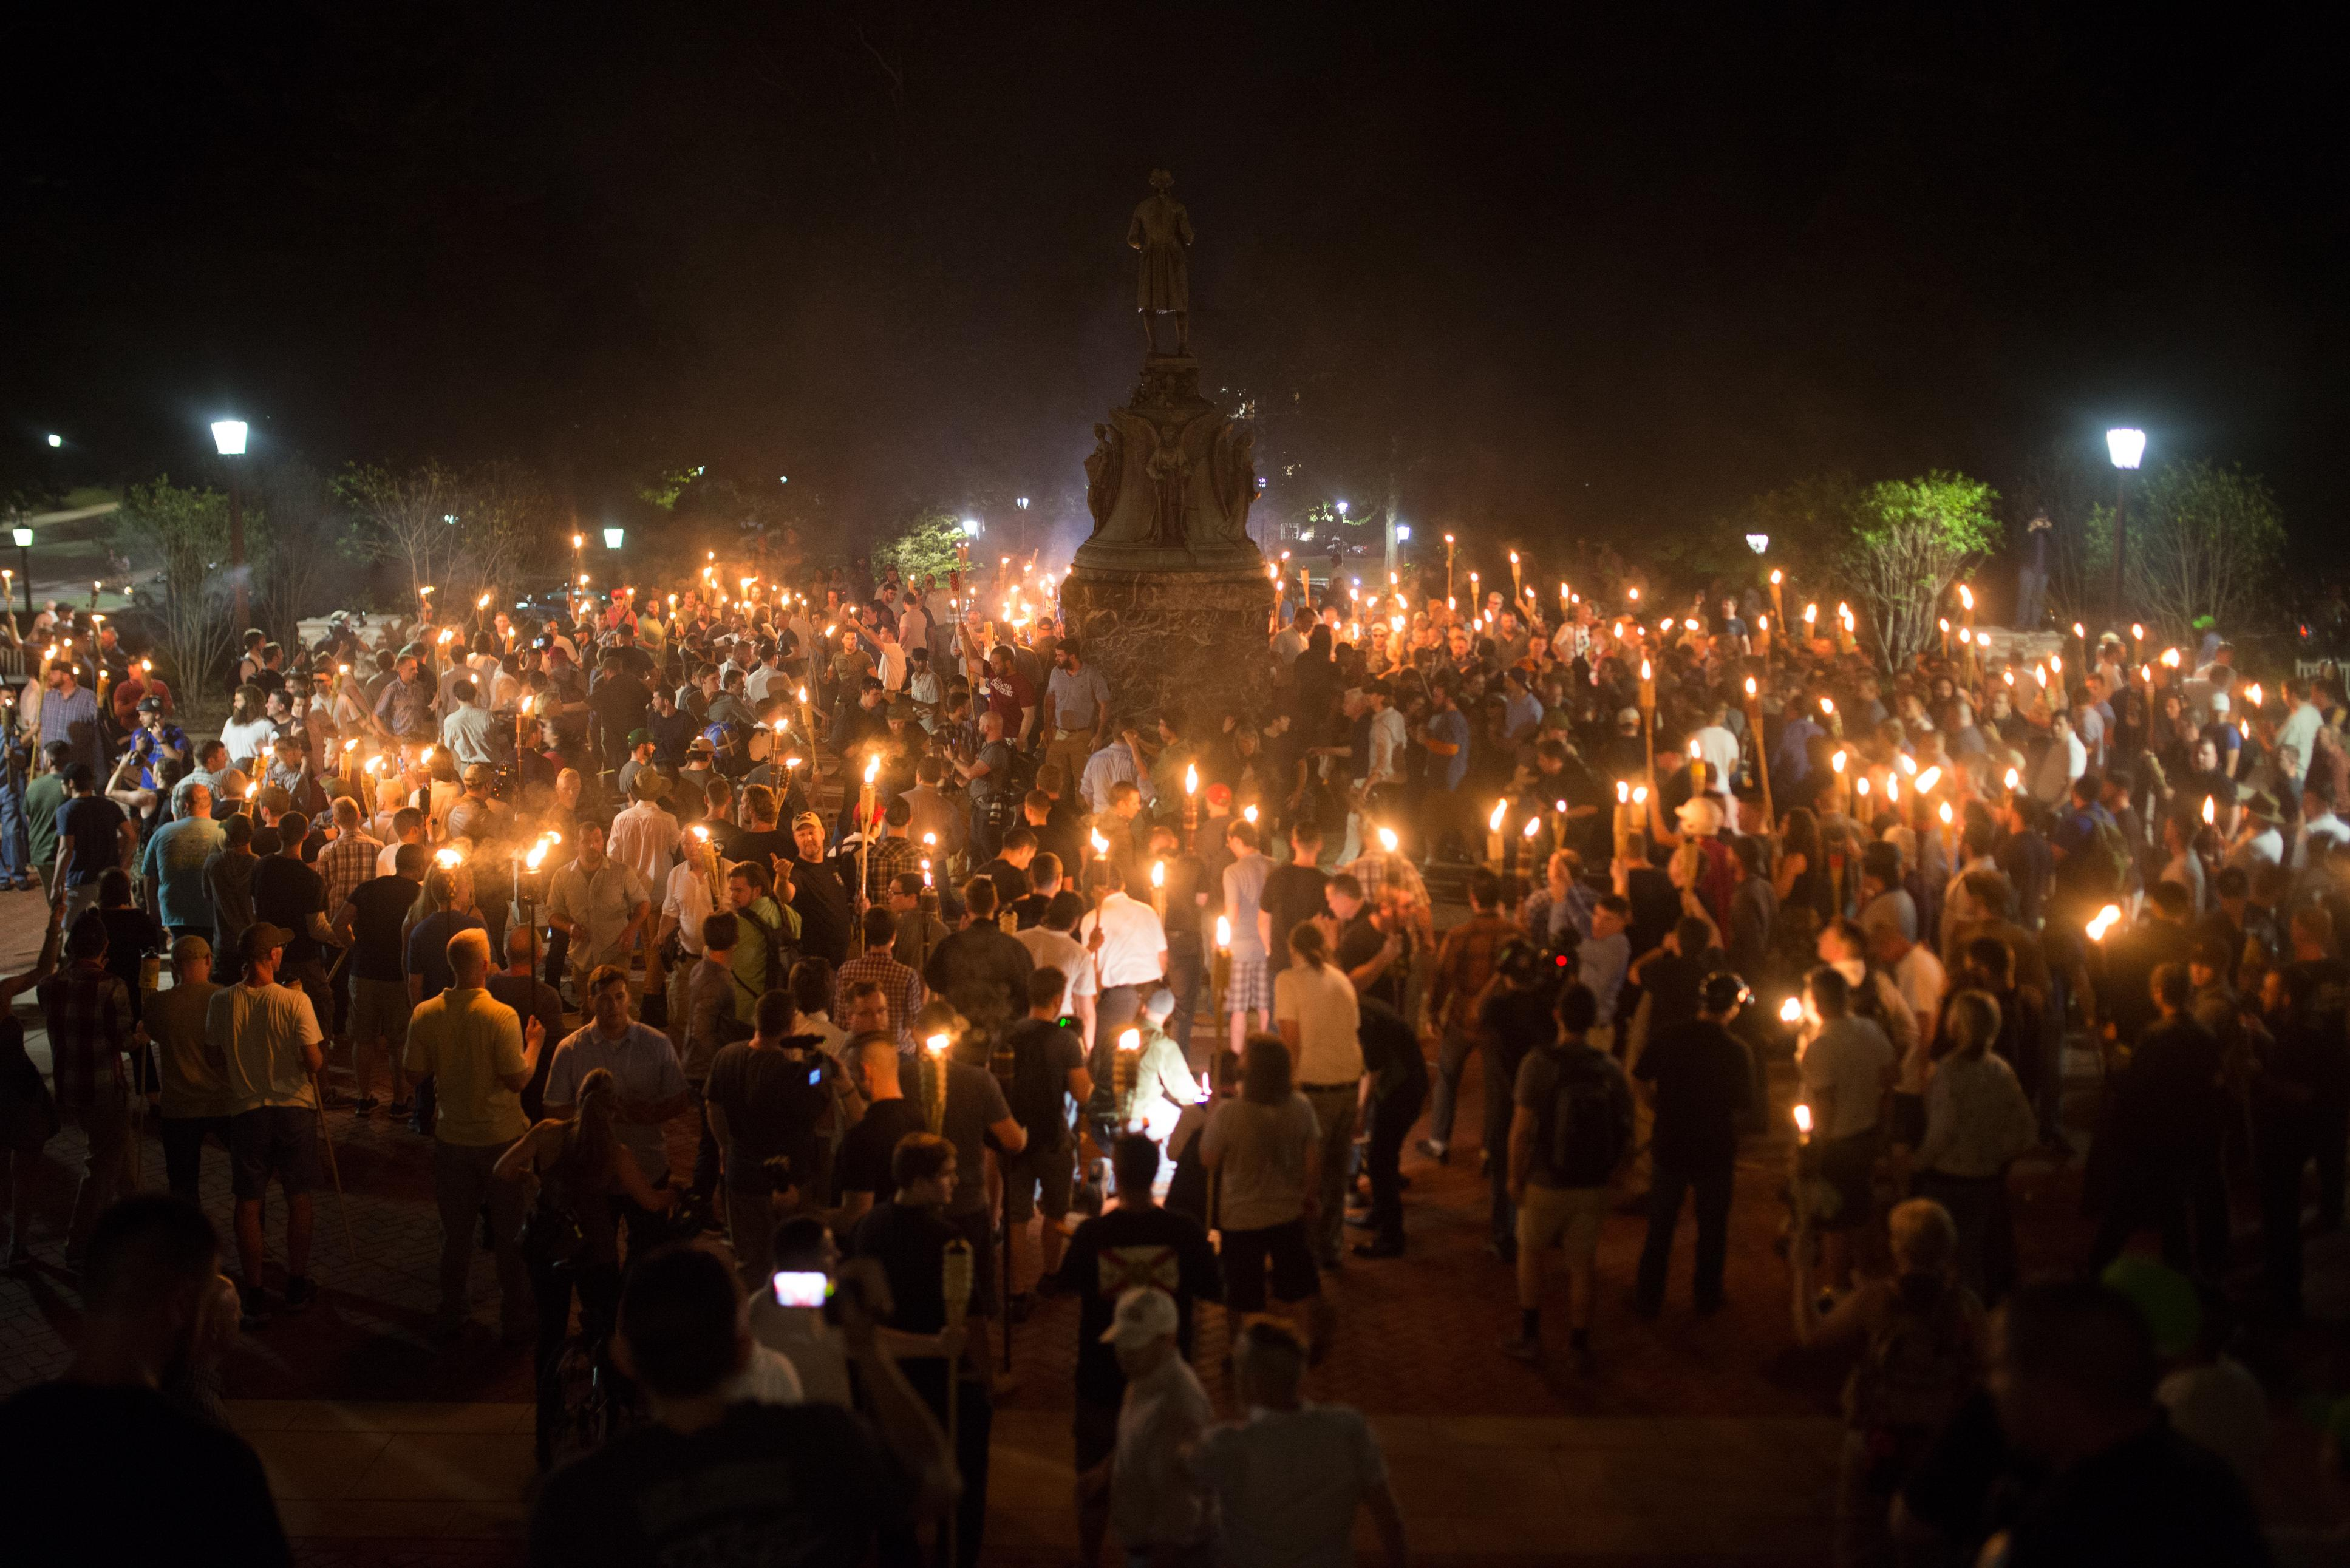 <p>Neo-Nazis, Alt-Right, and White Supremacists encircle counter protestors at the base of a statue of Thomas Jefferson after marching through the University of Virginia campus with torches in Charlottesville, Va., on Aug. 11, 2017. (Photo: Zach D Roberts/NurPhoto via Getty Images) </p>